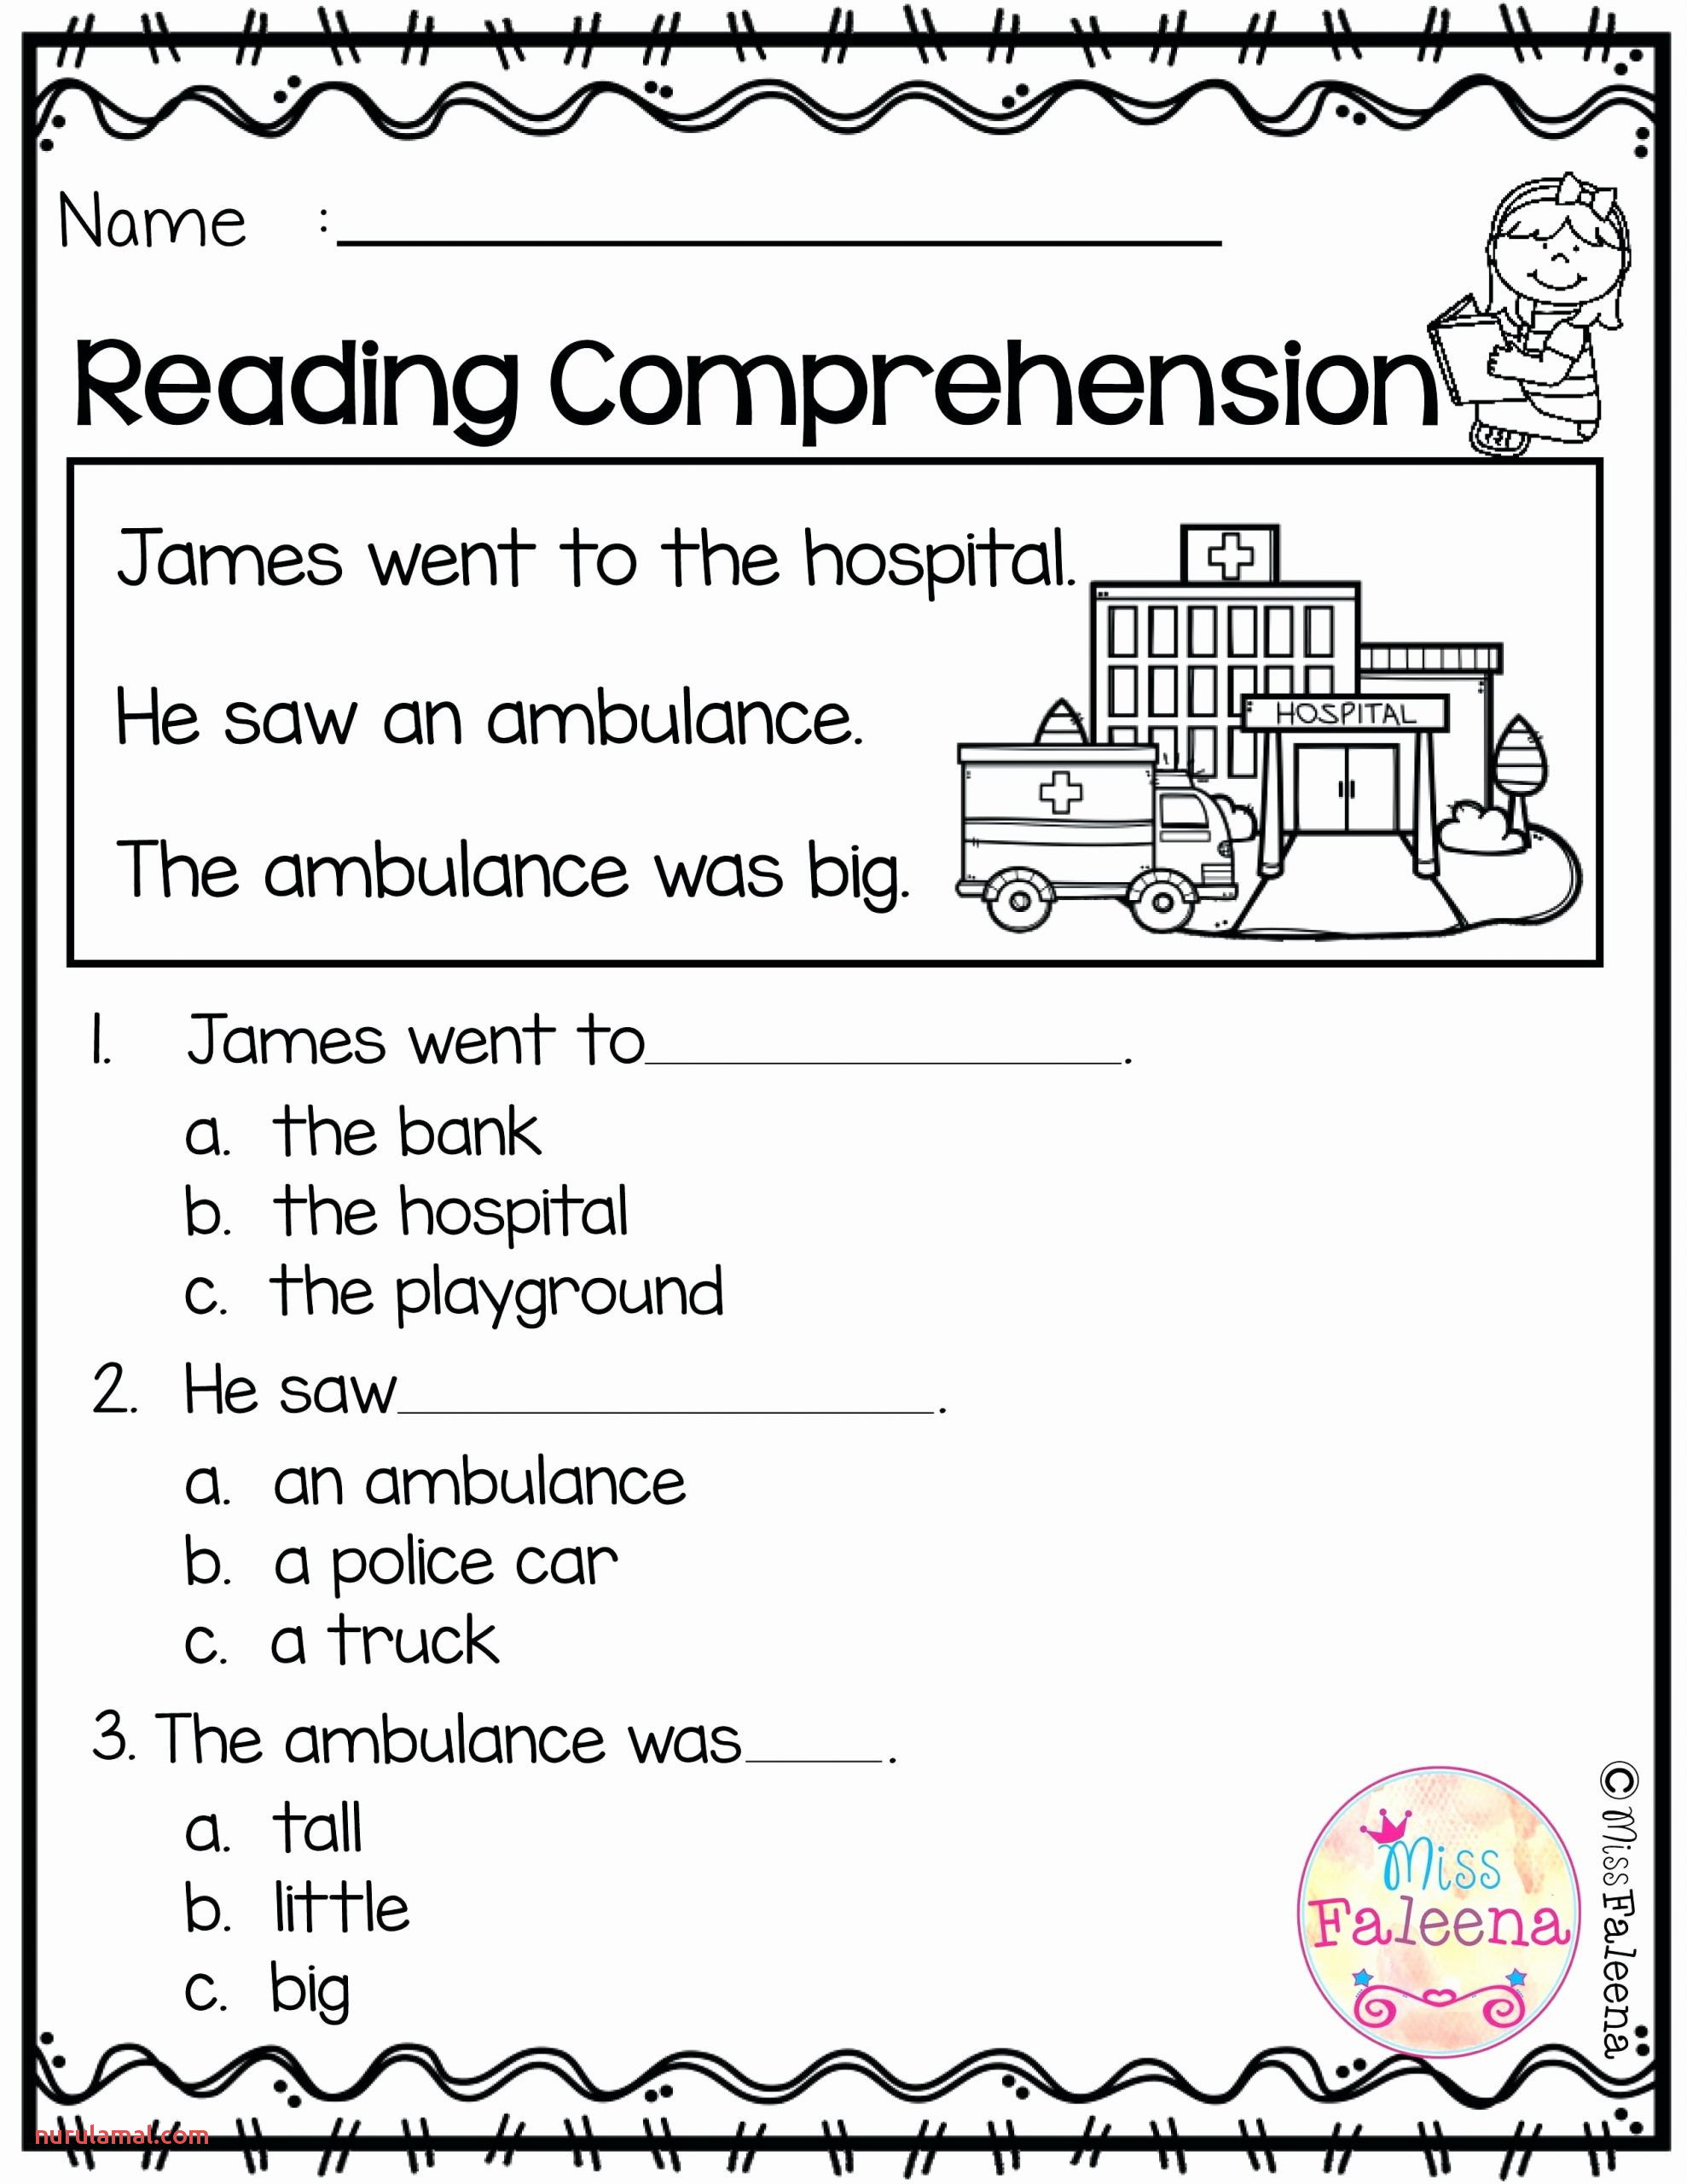 Worksheet Ideas Free Printable Worksheets for Kindergarten